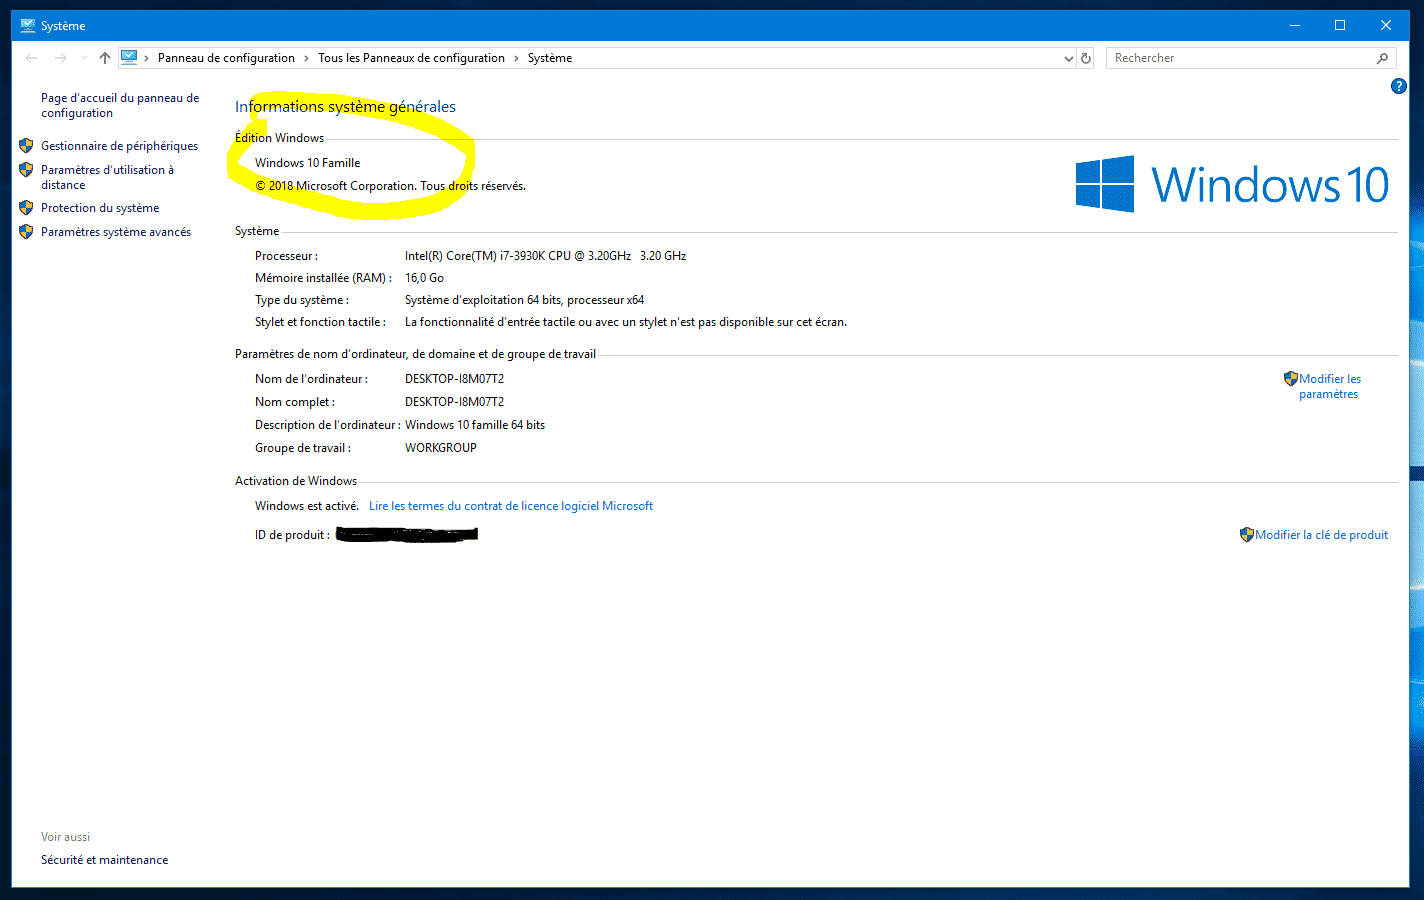 Comment savoir ma version de windows